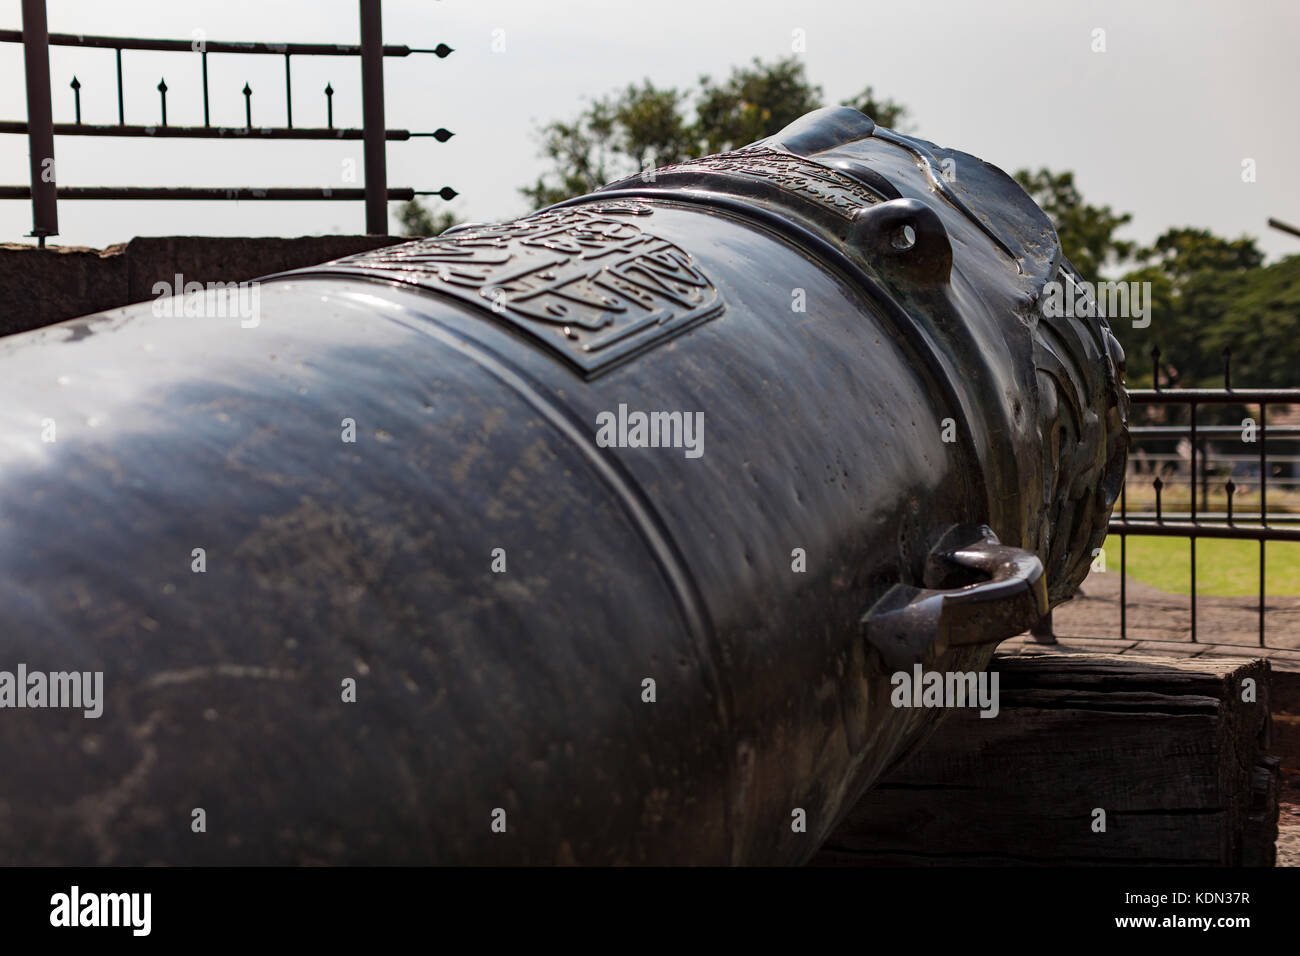 Malik-e Maidan in Bijapur is a huge cannon placed onto of a tower in Bijapur, India. - Stock Image